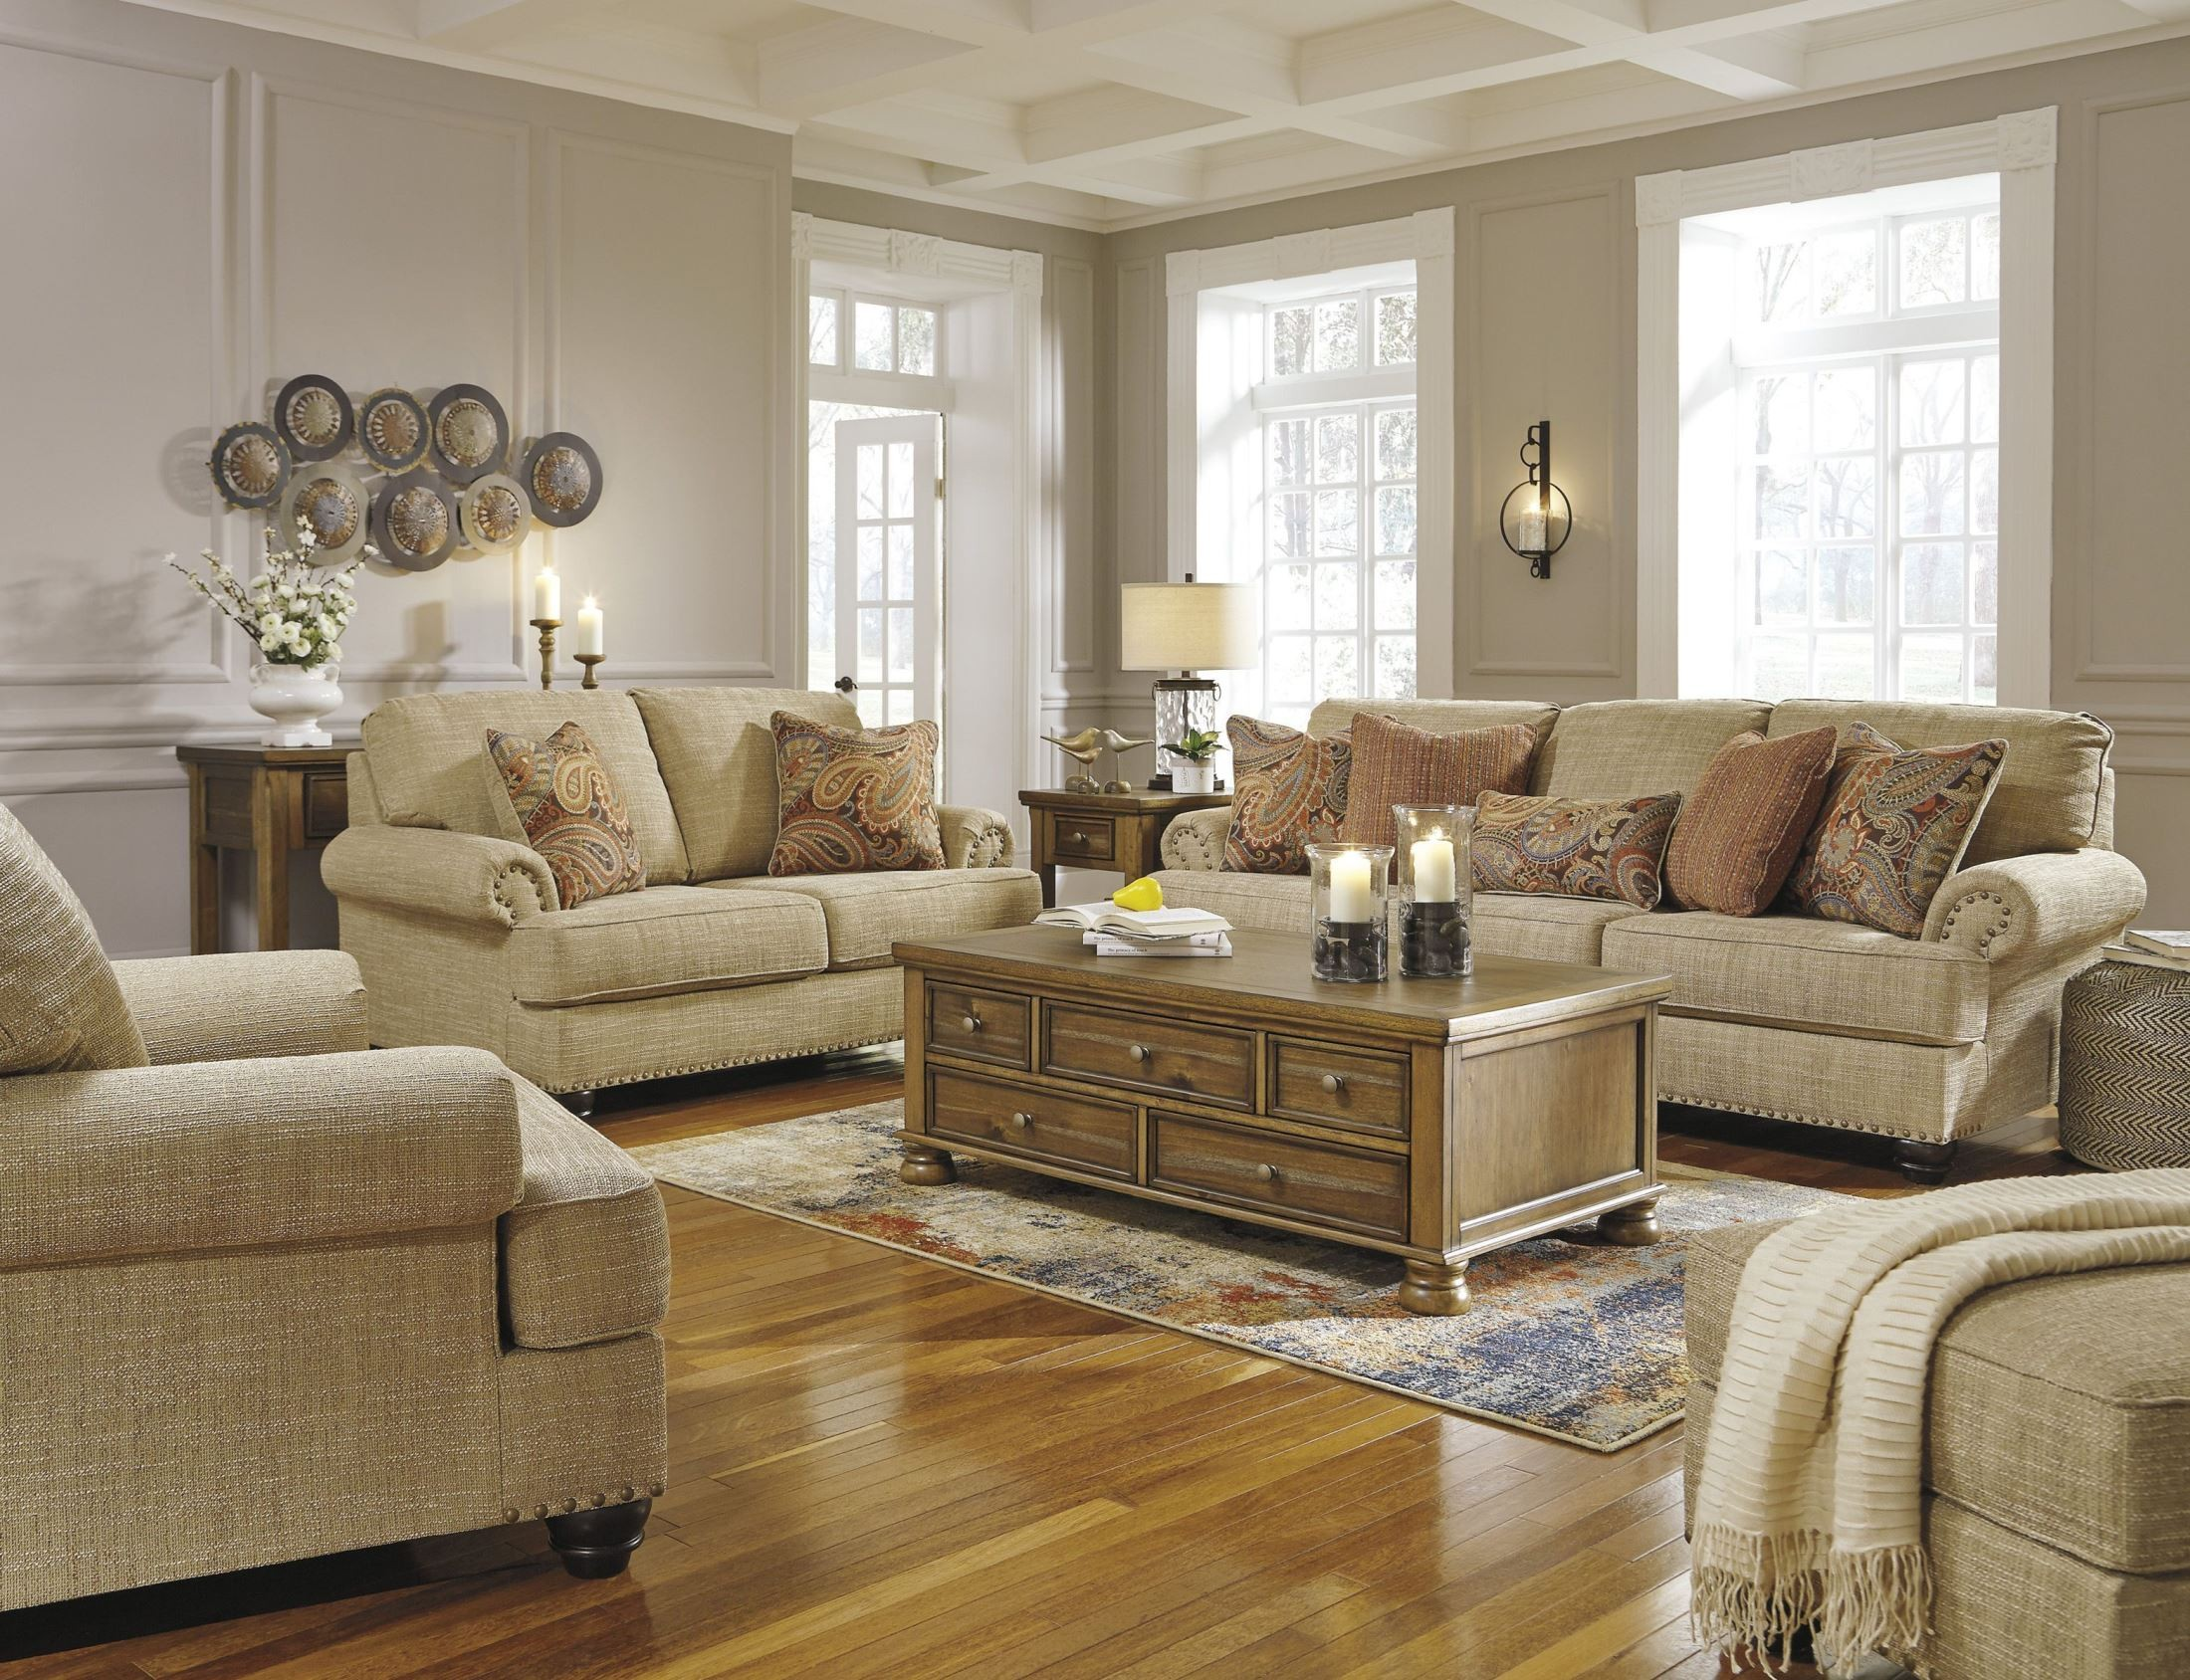 Candoro Oatmeal Living Room Set From Ashley Coleman